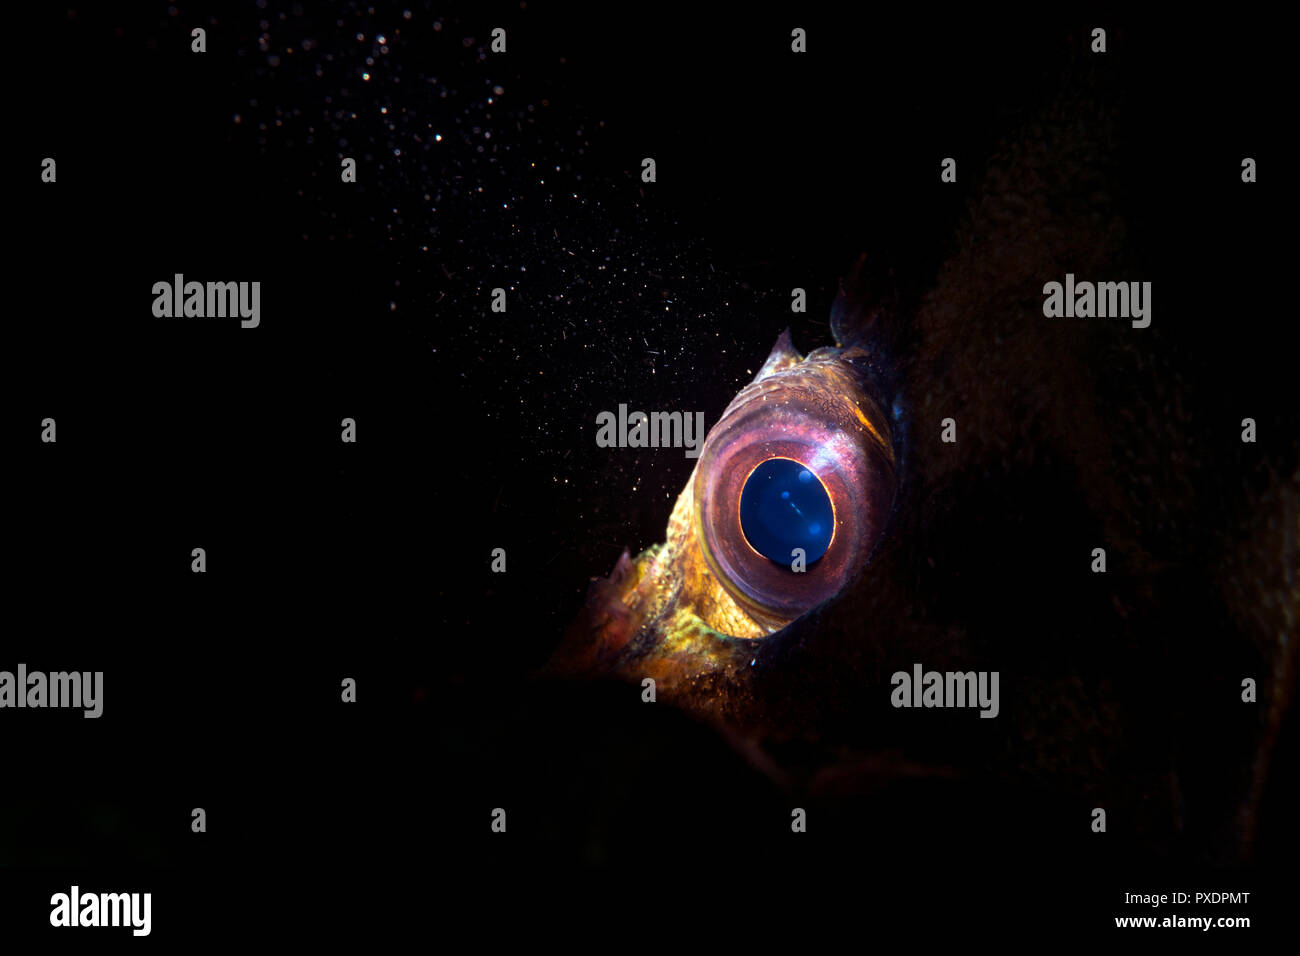 Using special limited beam snoot lighting, the eye of a tree fish in California's Channel Islands provides a moody look to an otherwise common fish sp - Stock Image